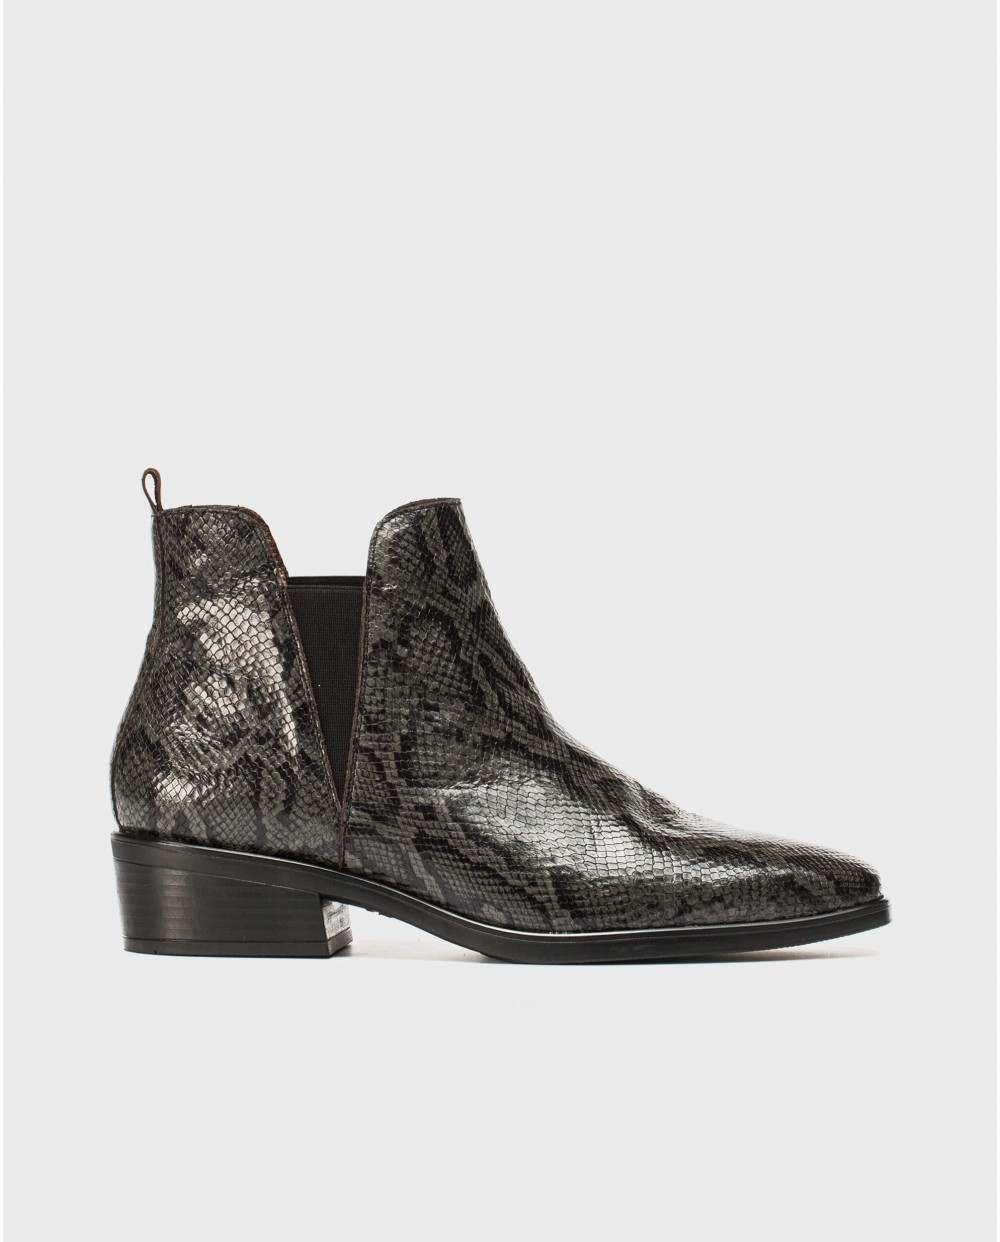 Wonders-Ankle Boots-Animal print ankle boot